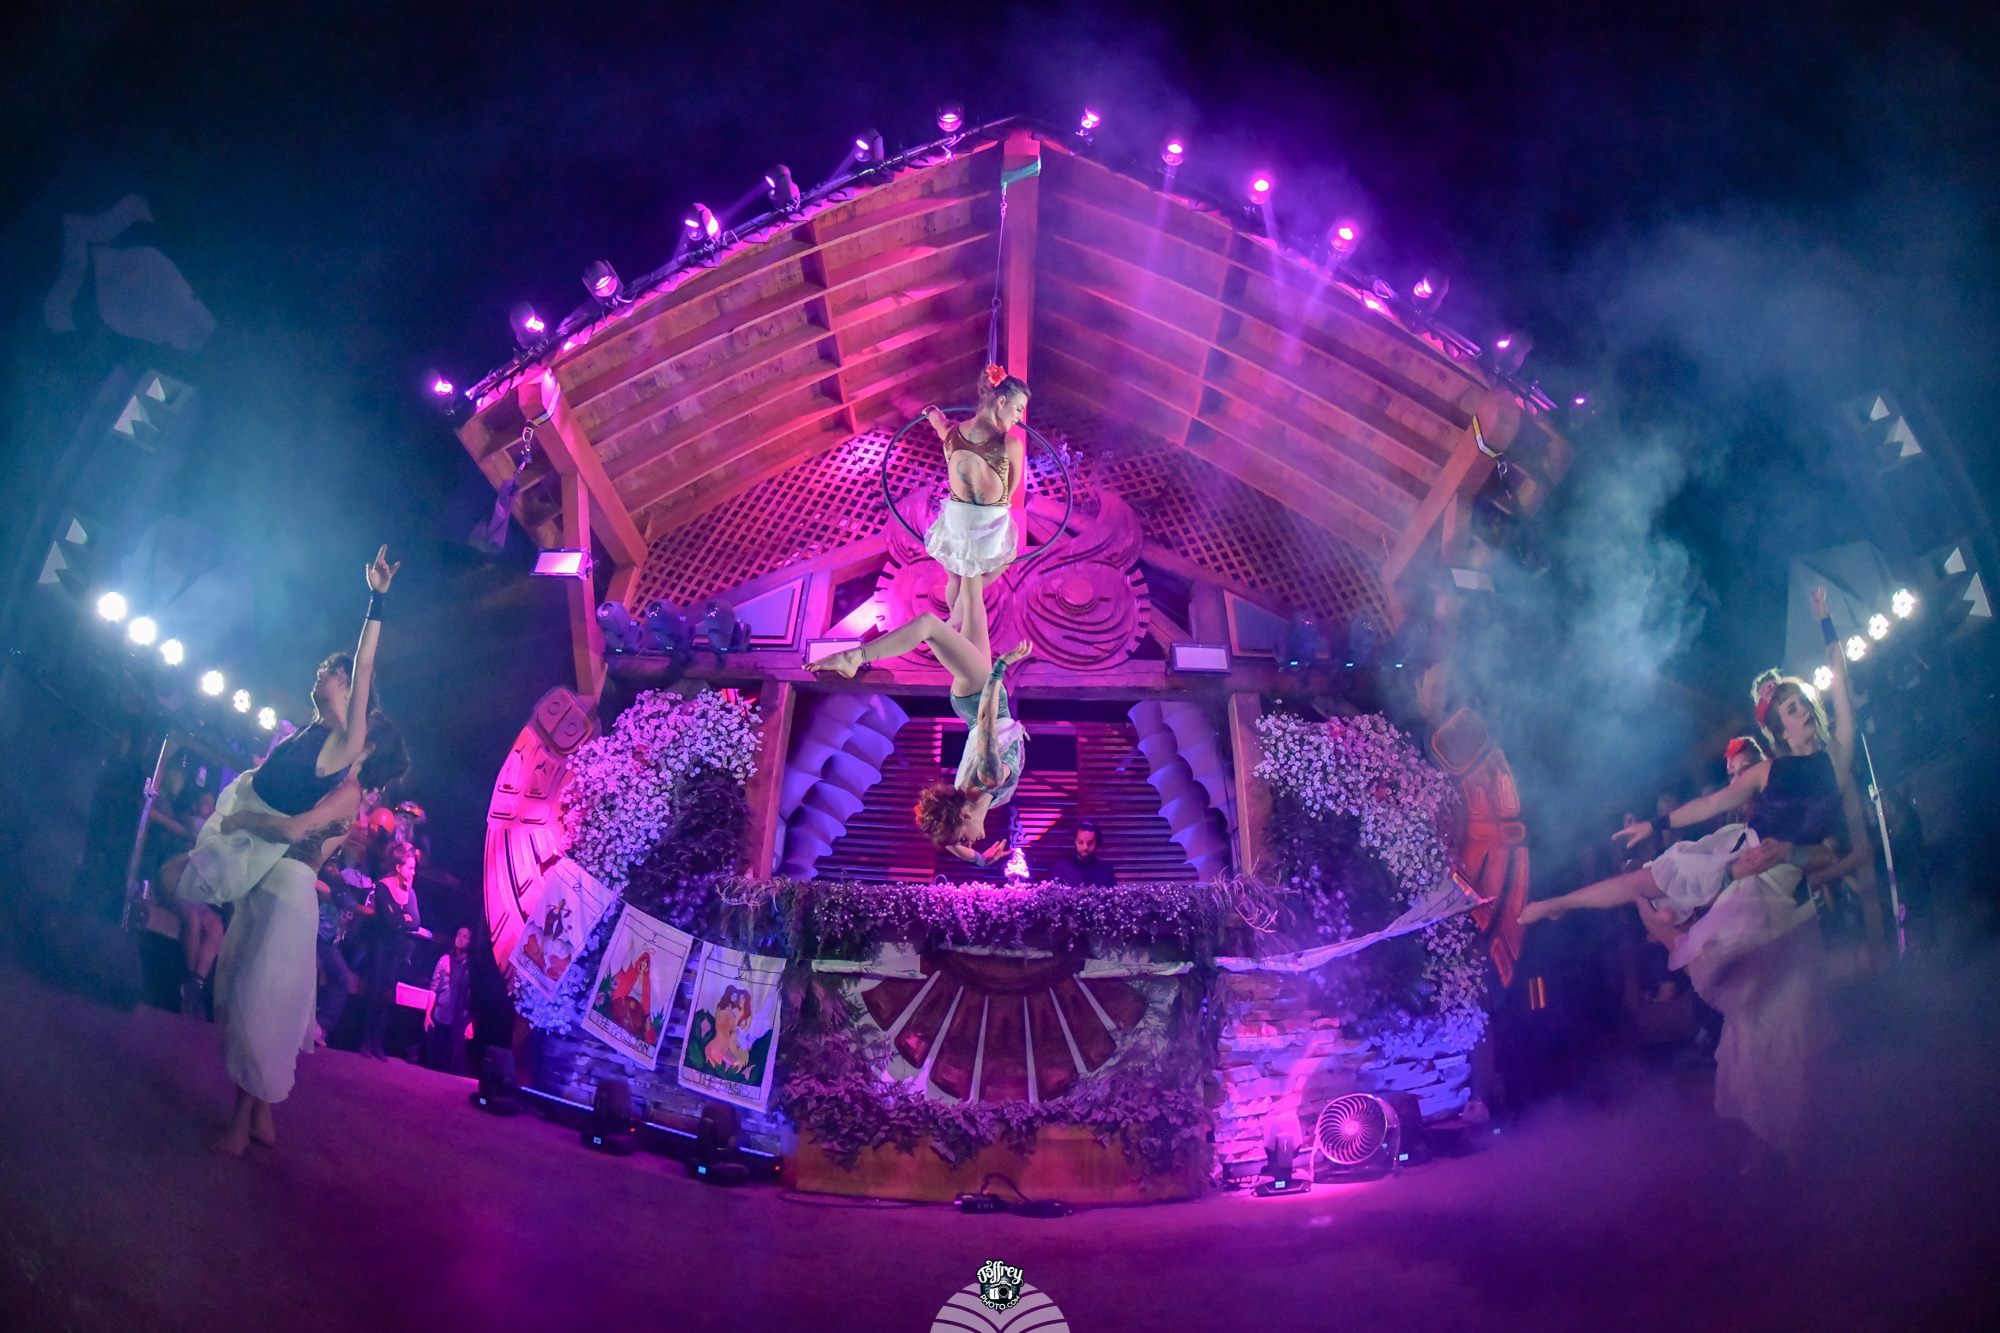 stage production - A 15-60 minute production that includes dancing, prop manipulation, aerial acrobatics, costumes, set design, and original music.